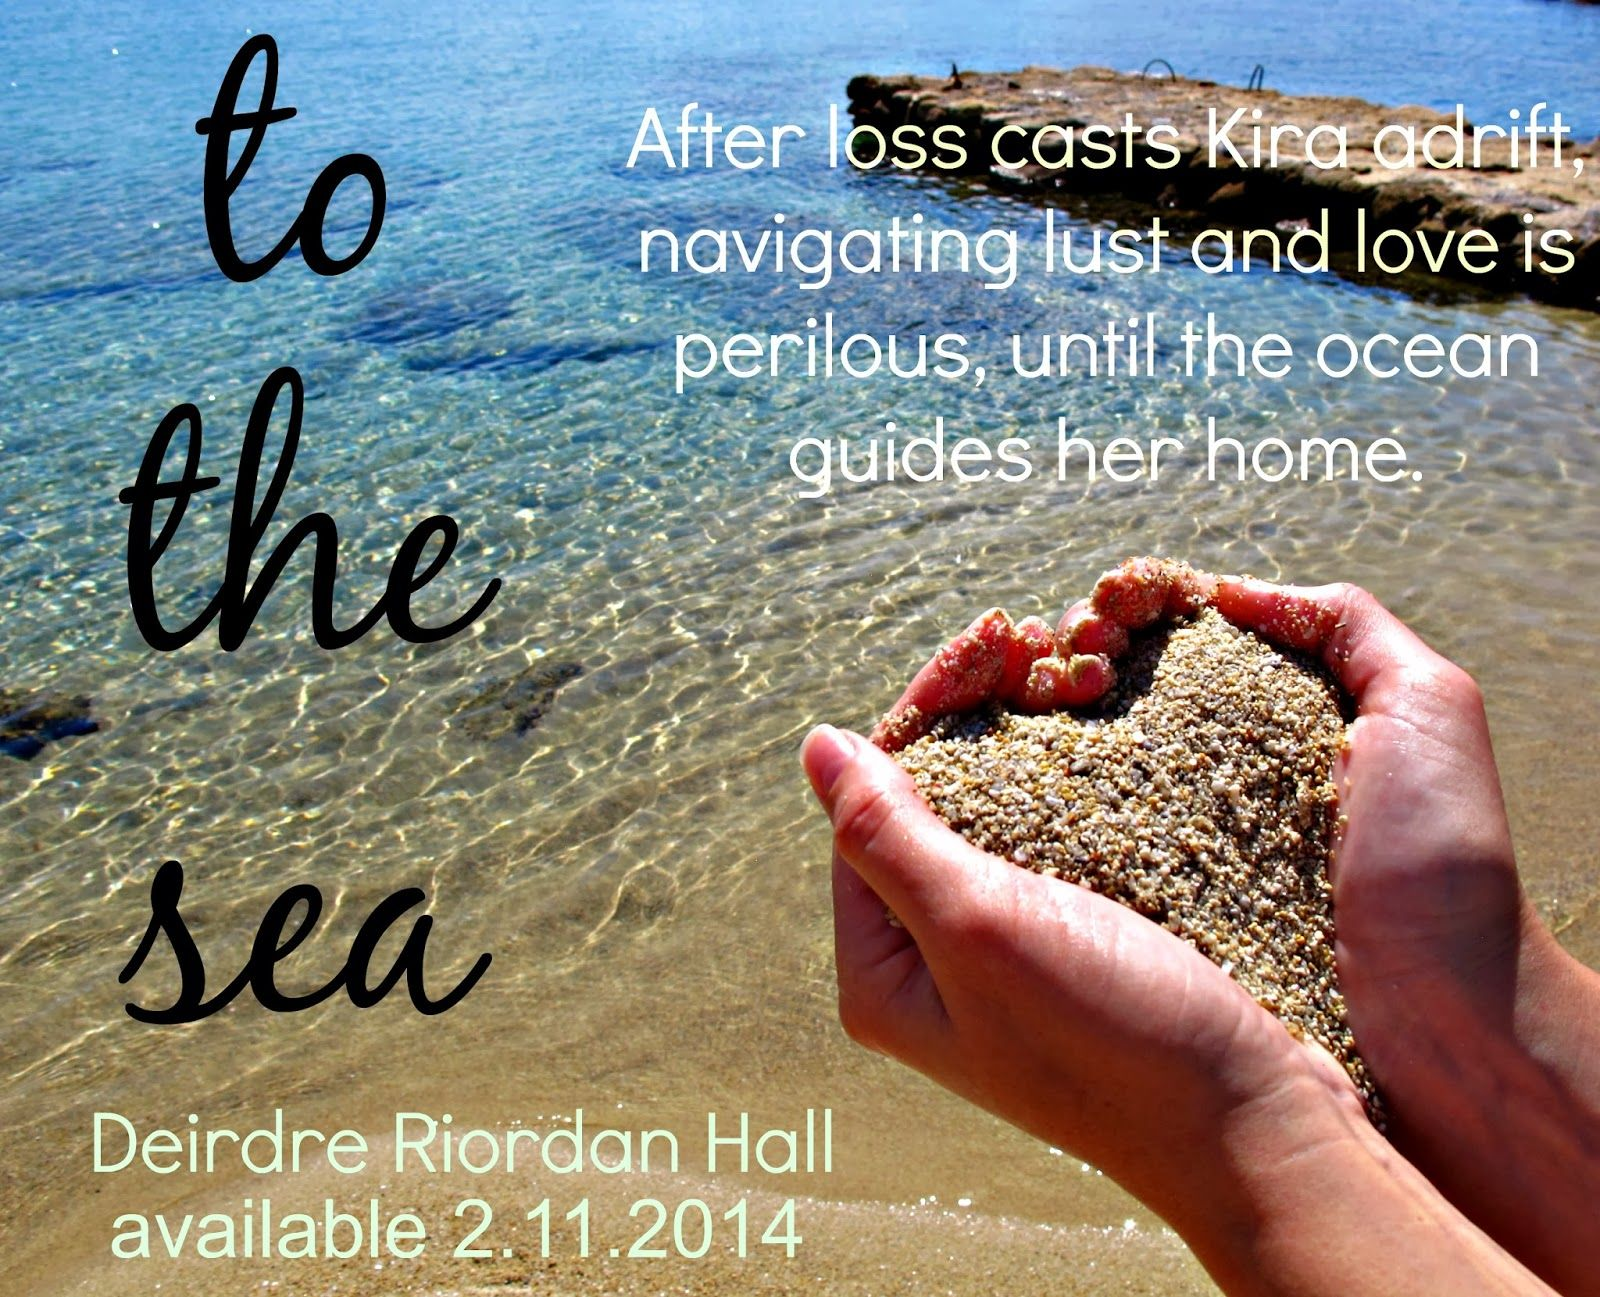 A glimpse of TO THE SEA, a new adult contemporary novel with salt, sun & a splash of romance.